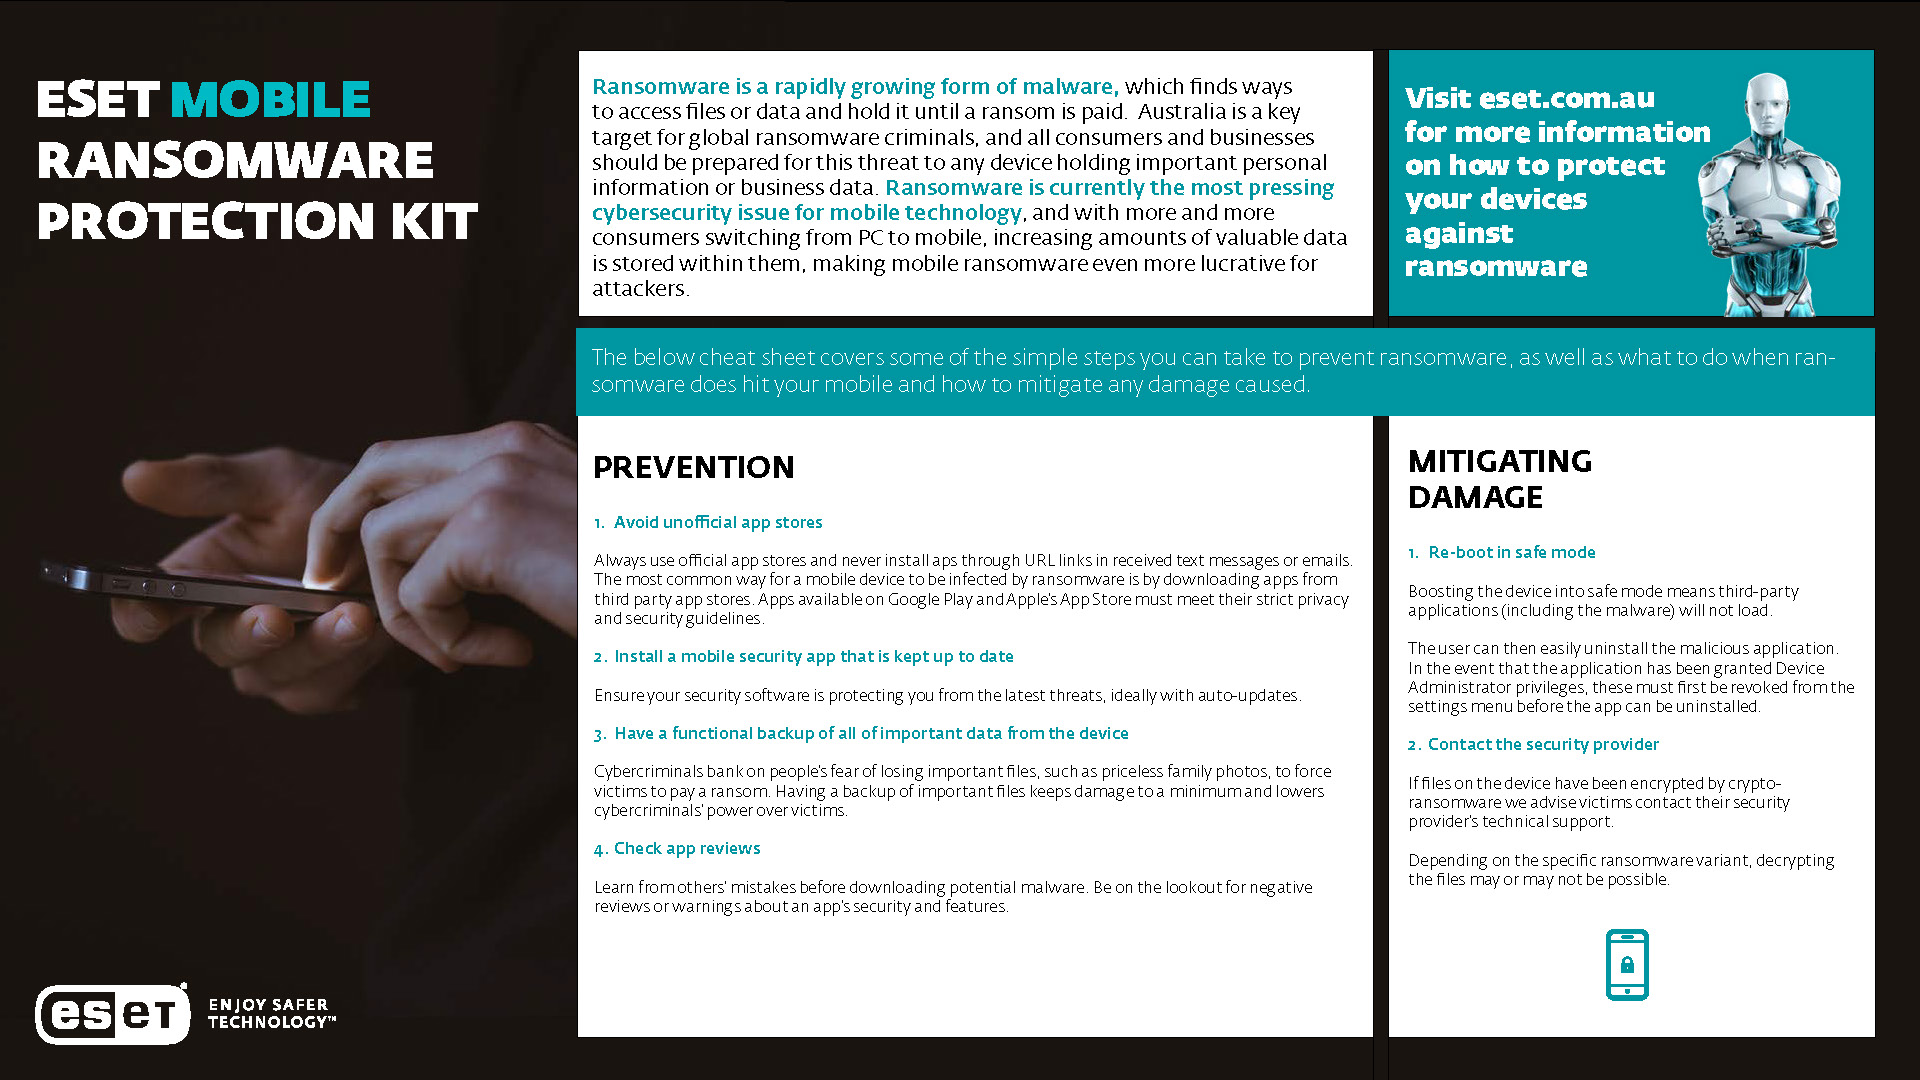 ESET Protection Kit 2 pages_Page_2.jpg